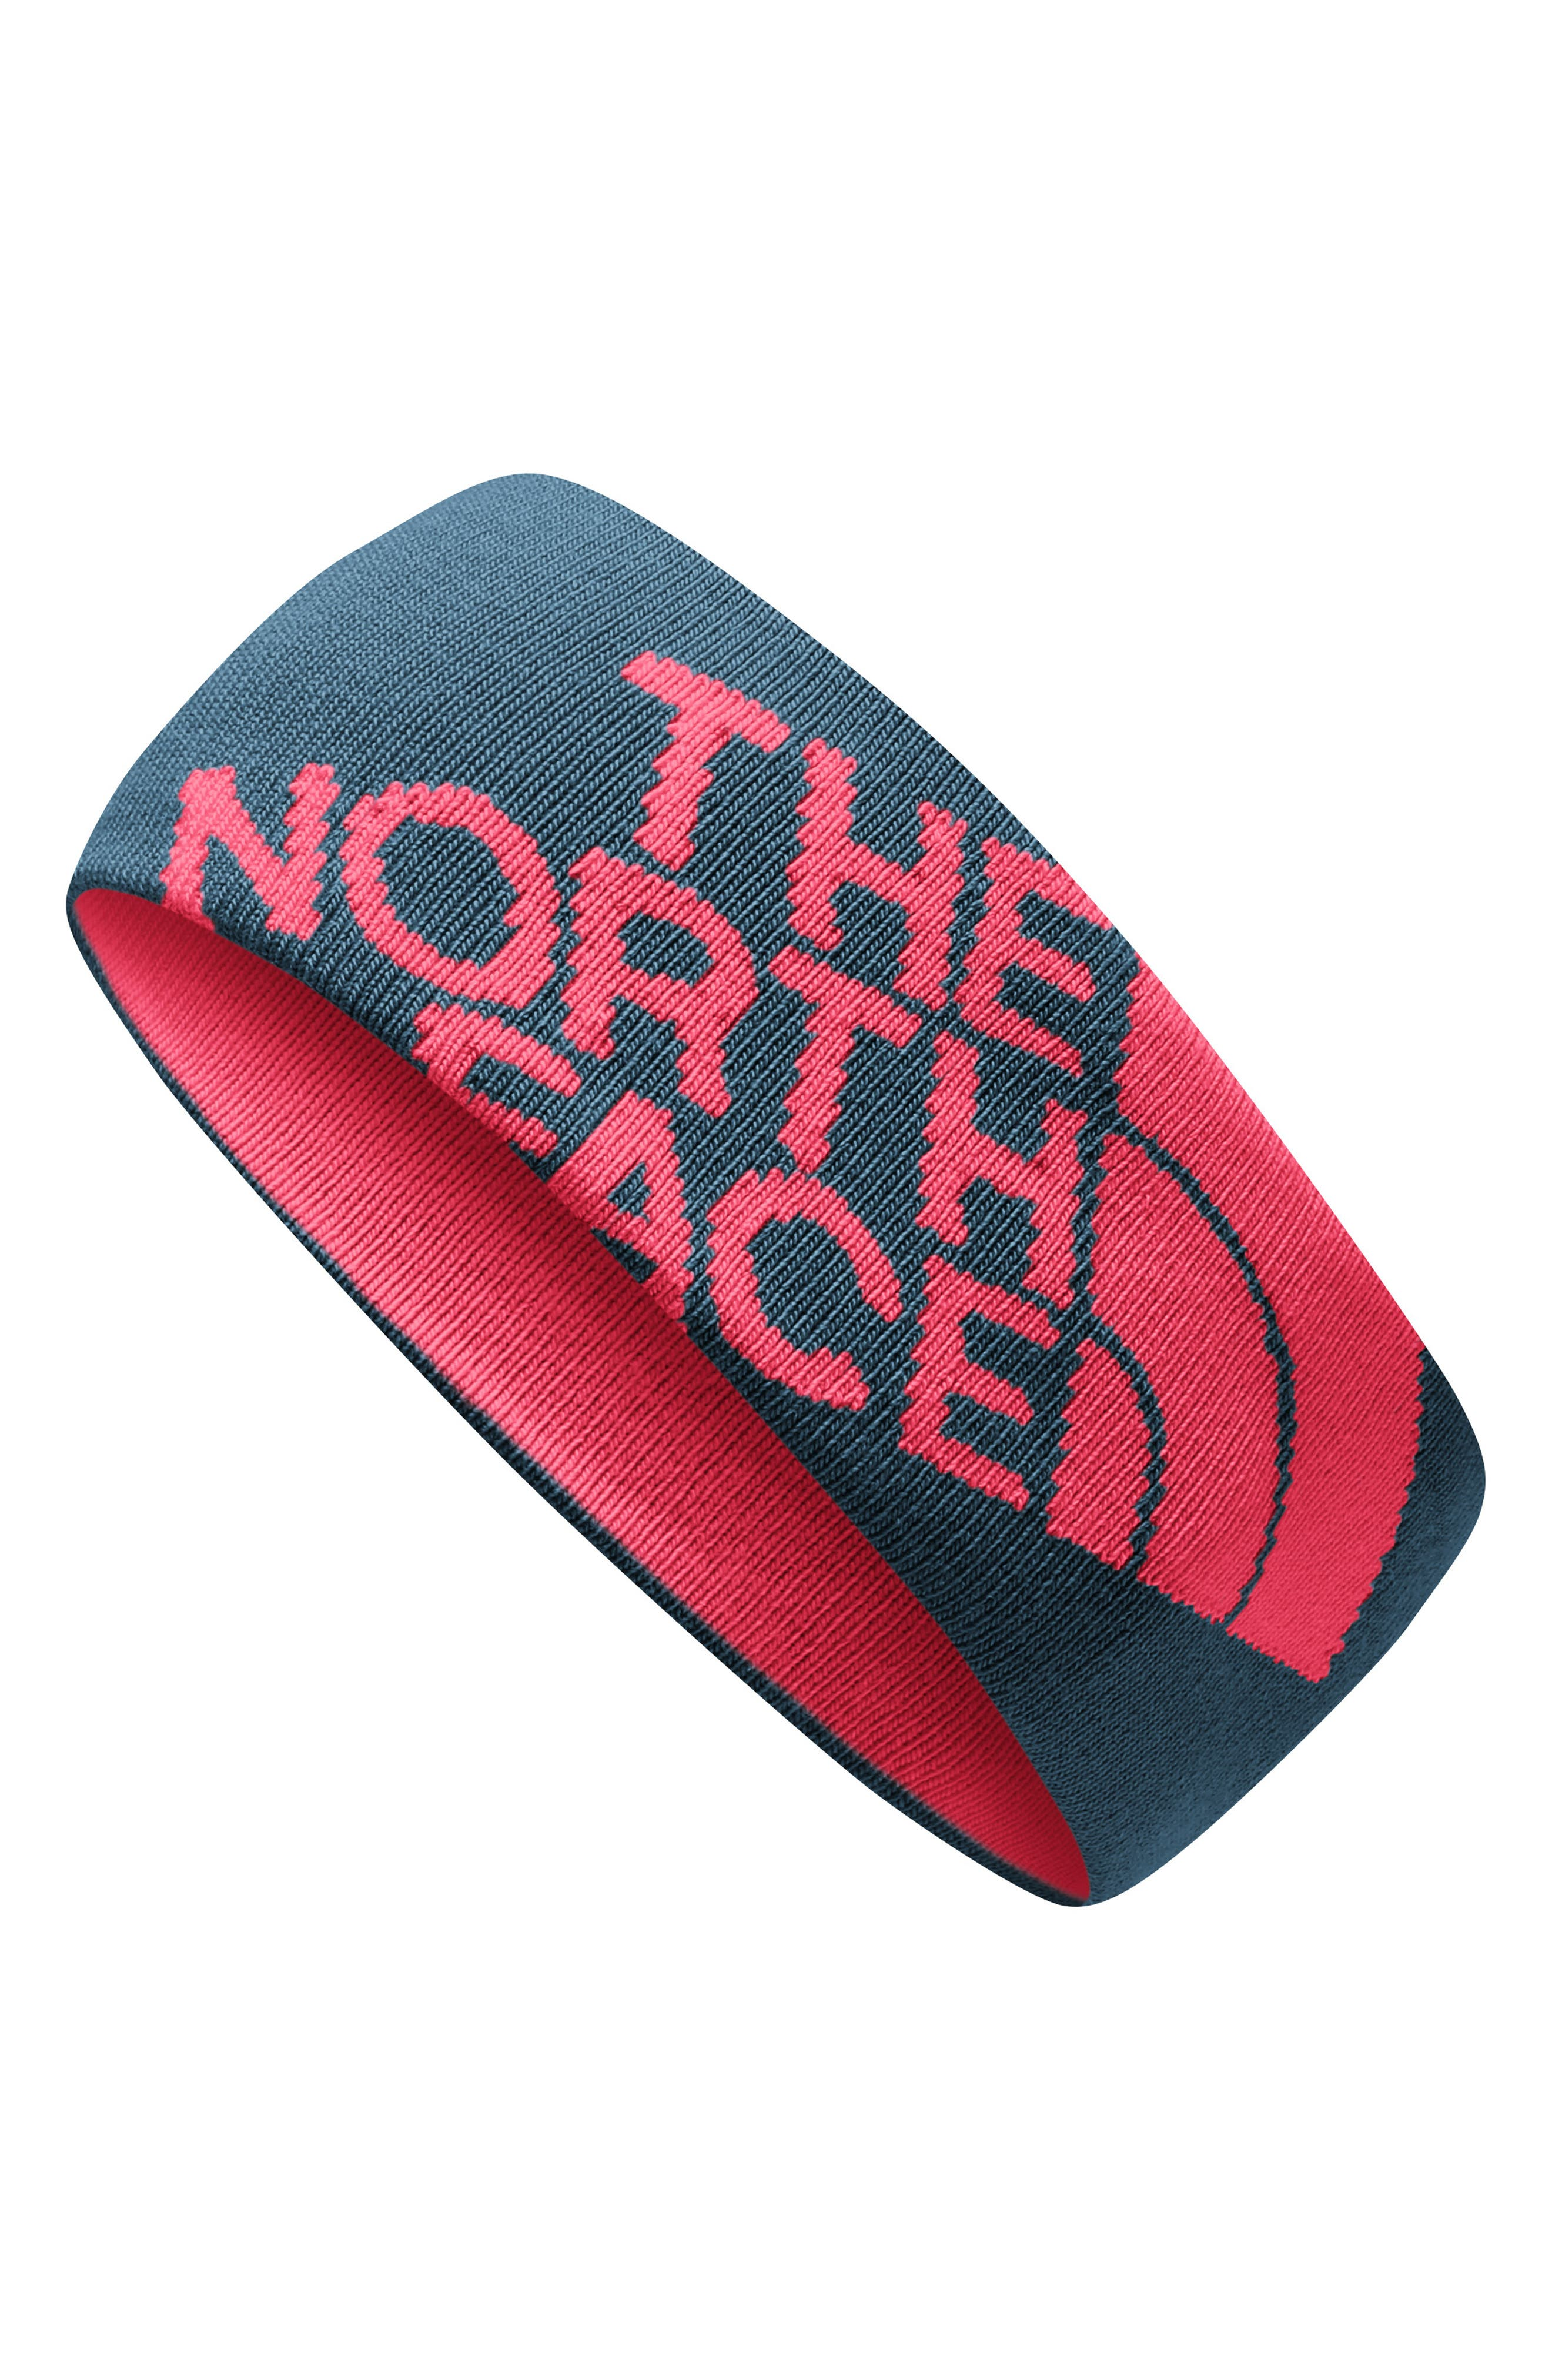 THE NORTH FACE,                             Chizzler Headband,                             Main thumbnail 1, color,                             401